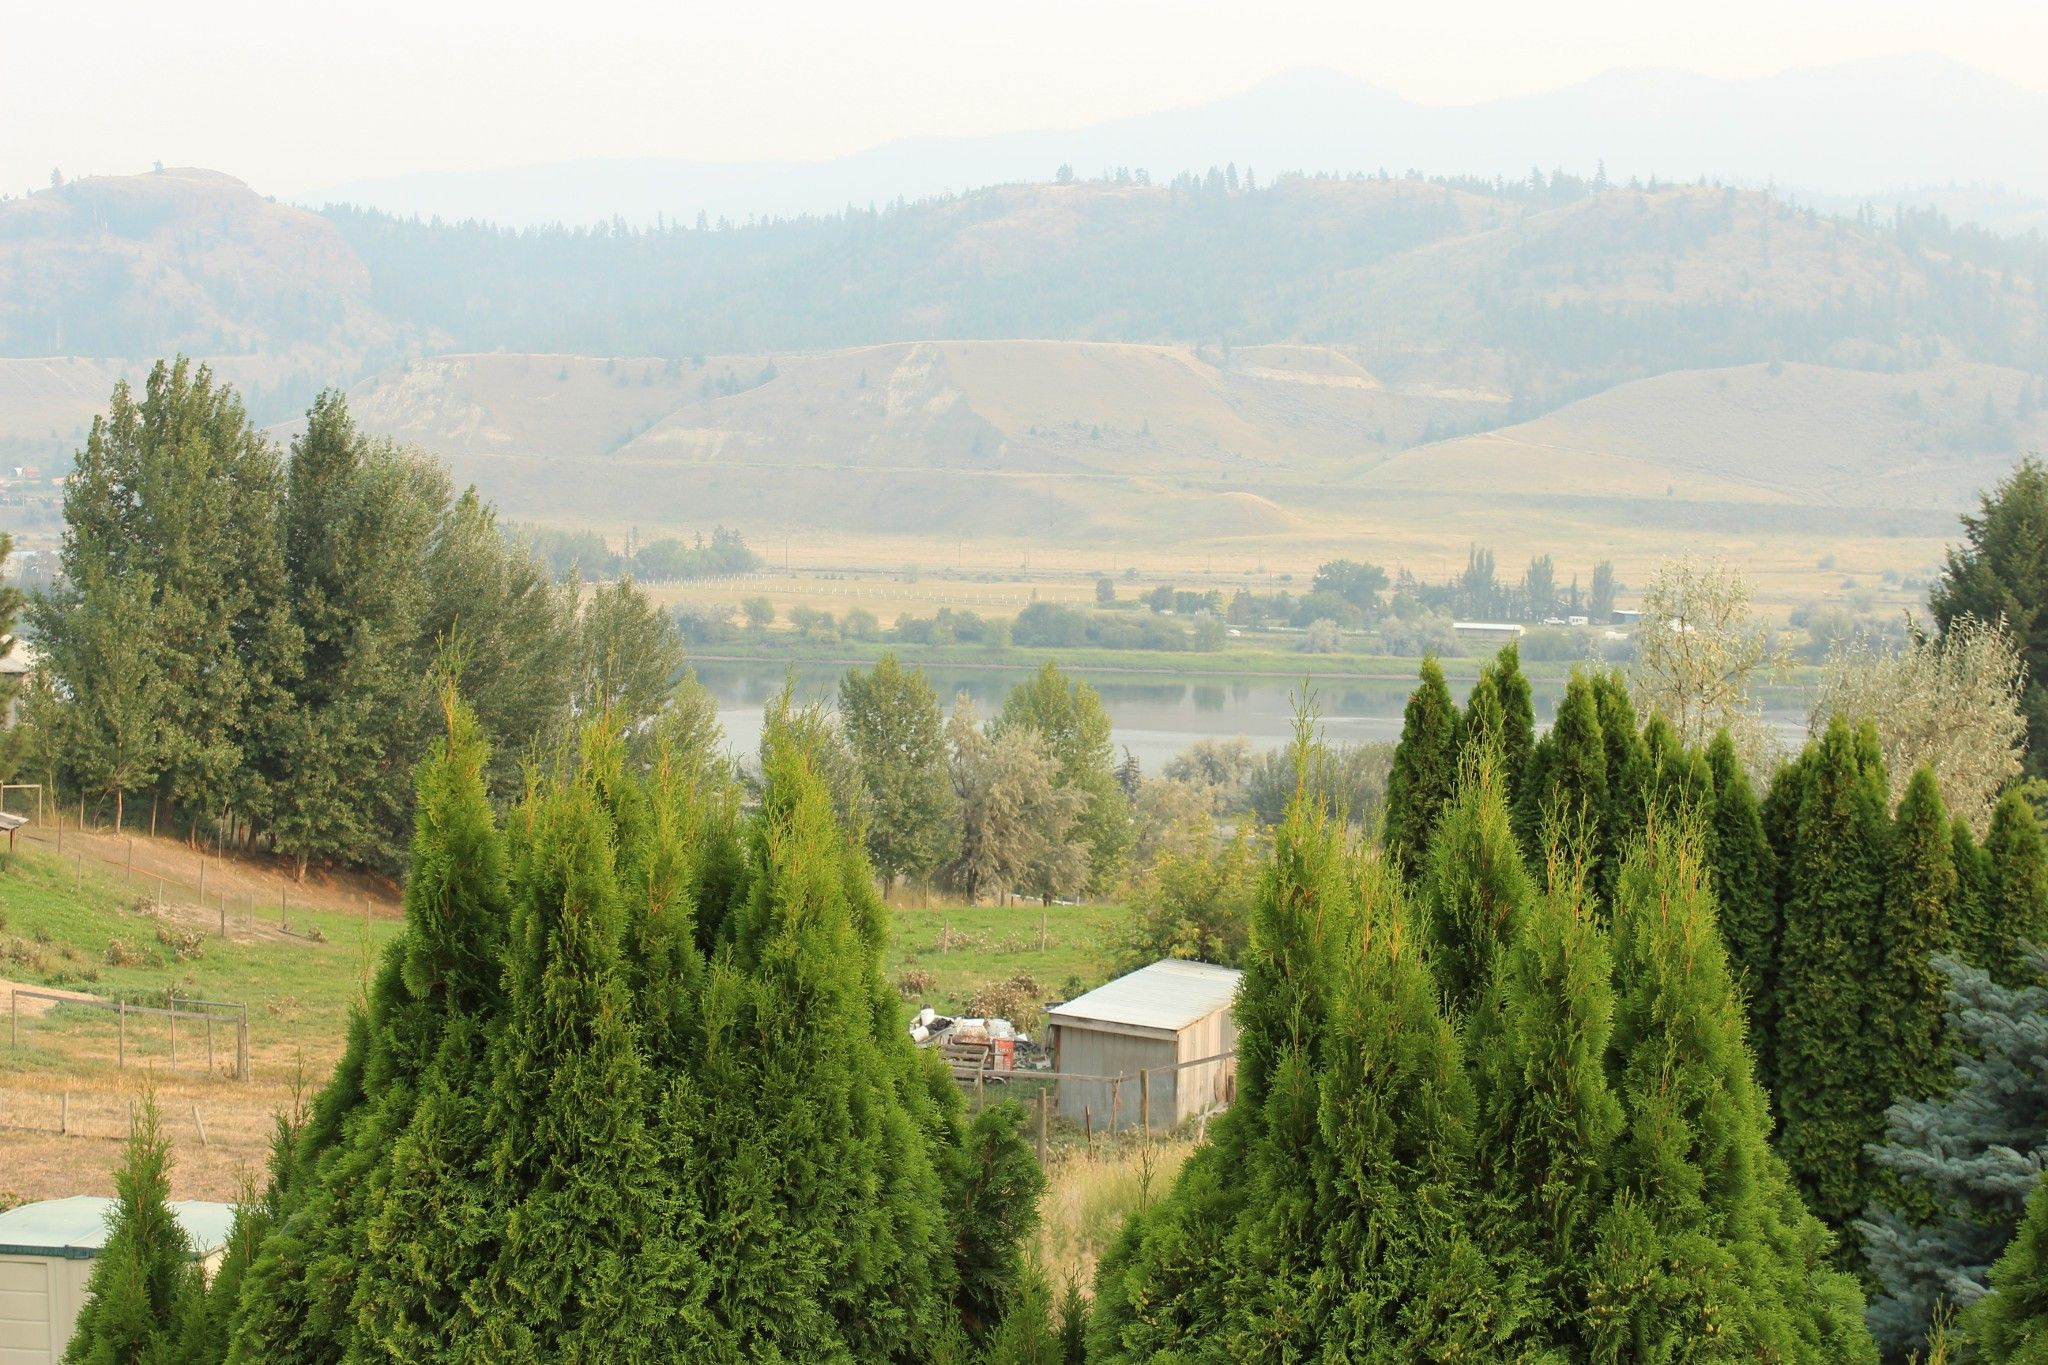 Photo 13: Photos: 22 3099 E Shuswap Road in Kamloops: South Thompson Valley Manufactured Home for sale : MLS®# 147827